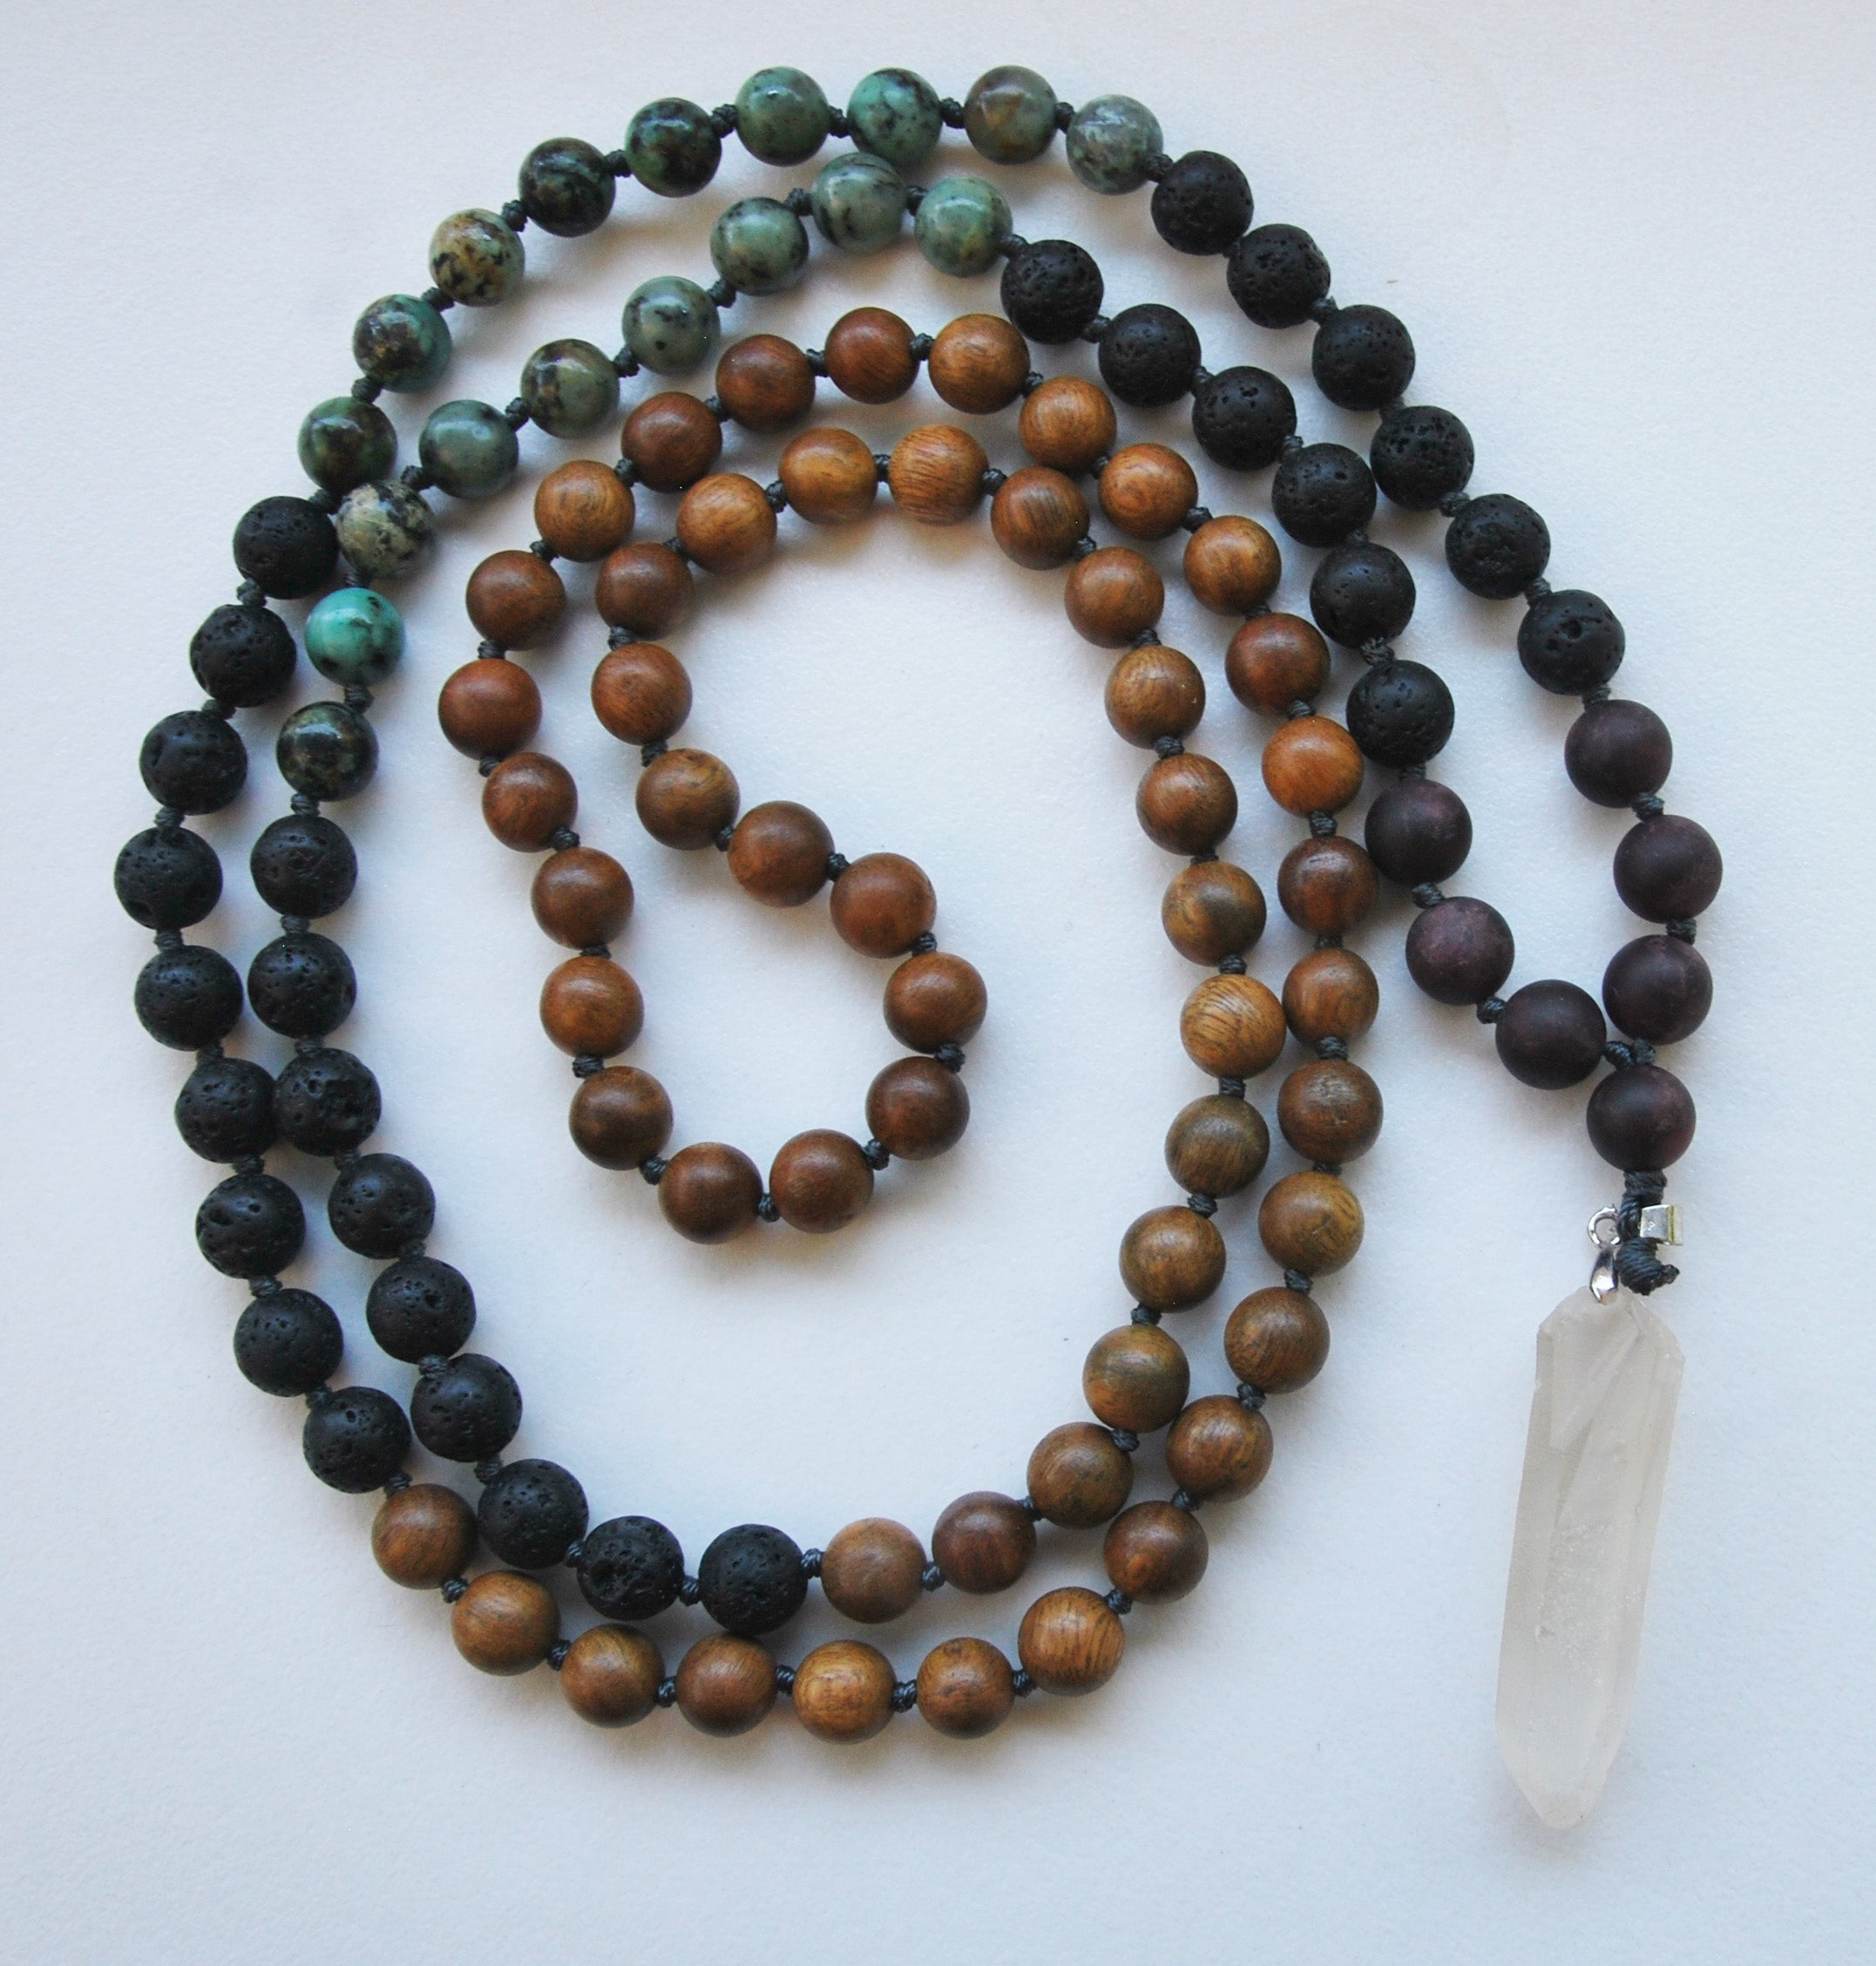 8mm Green Sandalwood & African Turquoise 108 Knotted Mala Necklace with Crystal Pendant